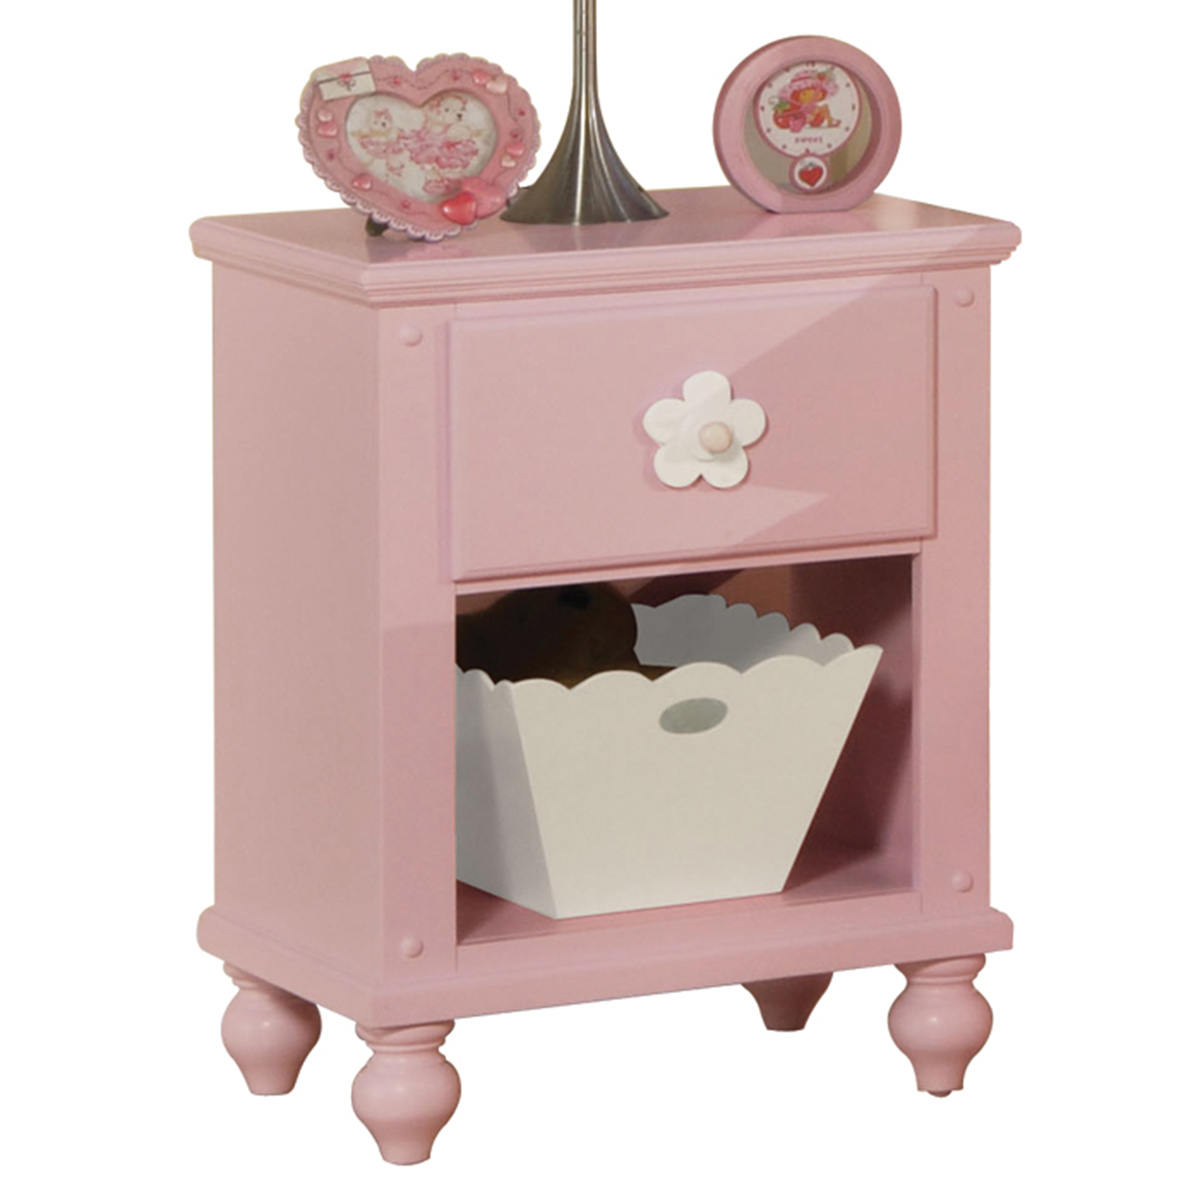 Acme Floresville Nightstand with basket - Pink (White Flower)